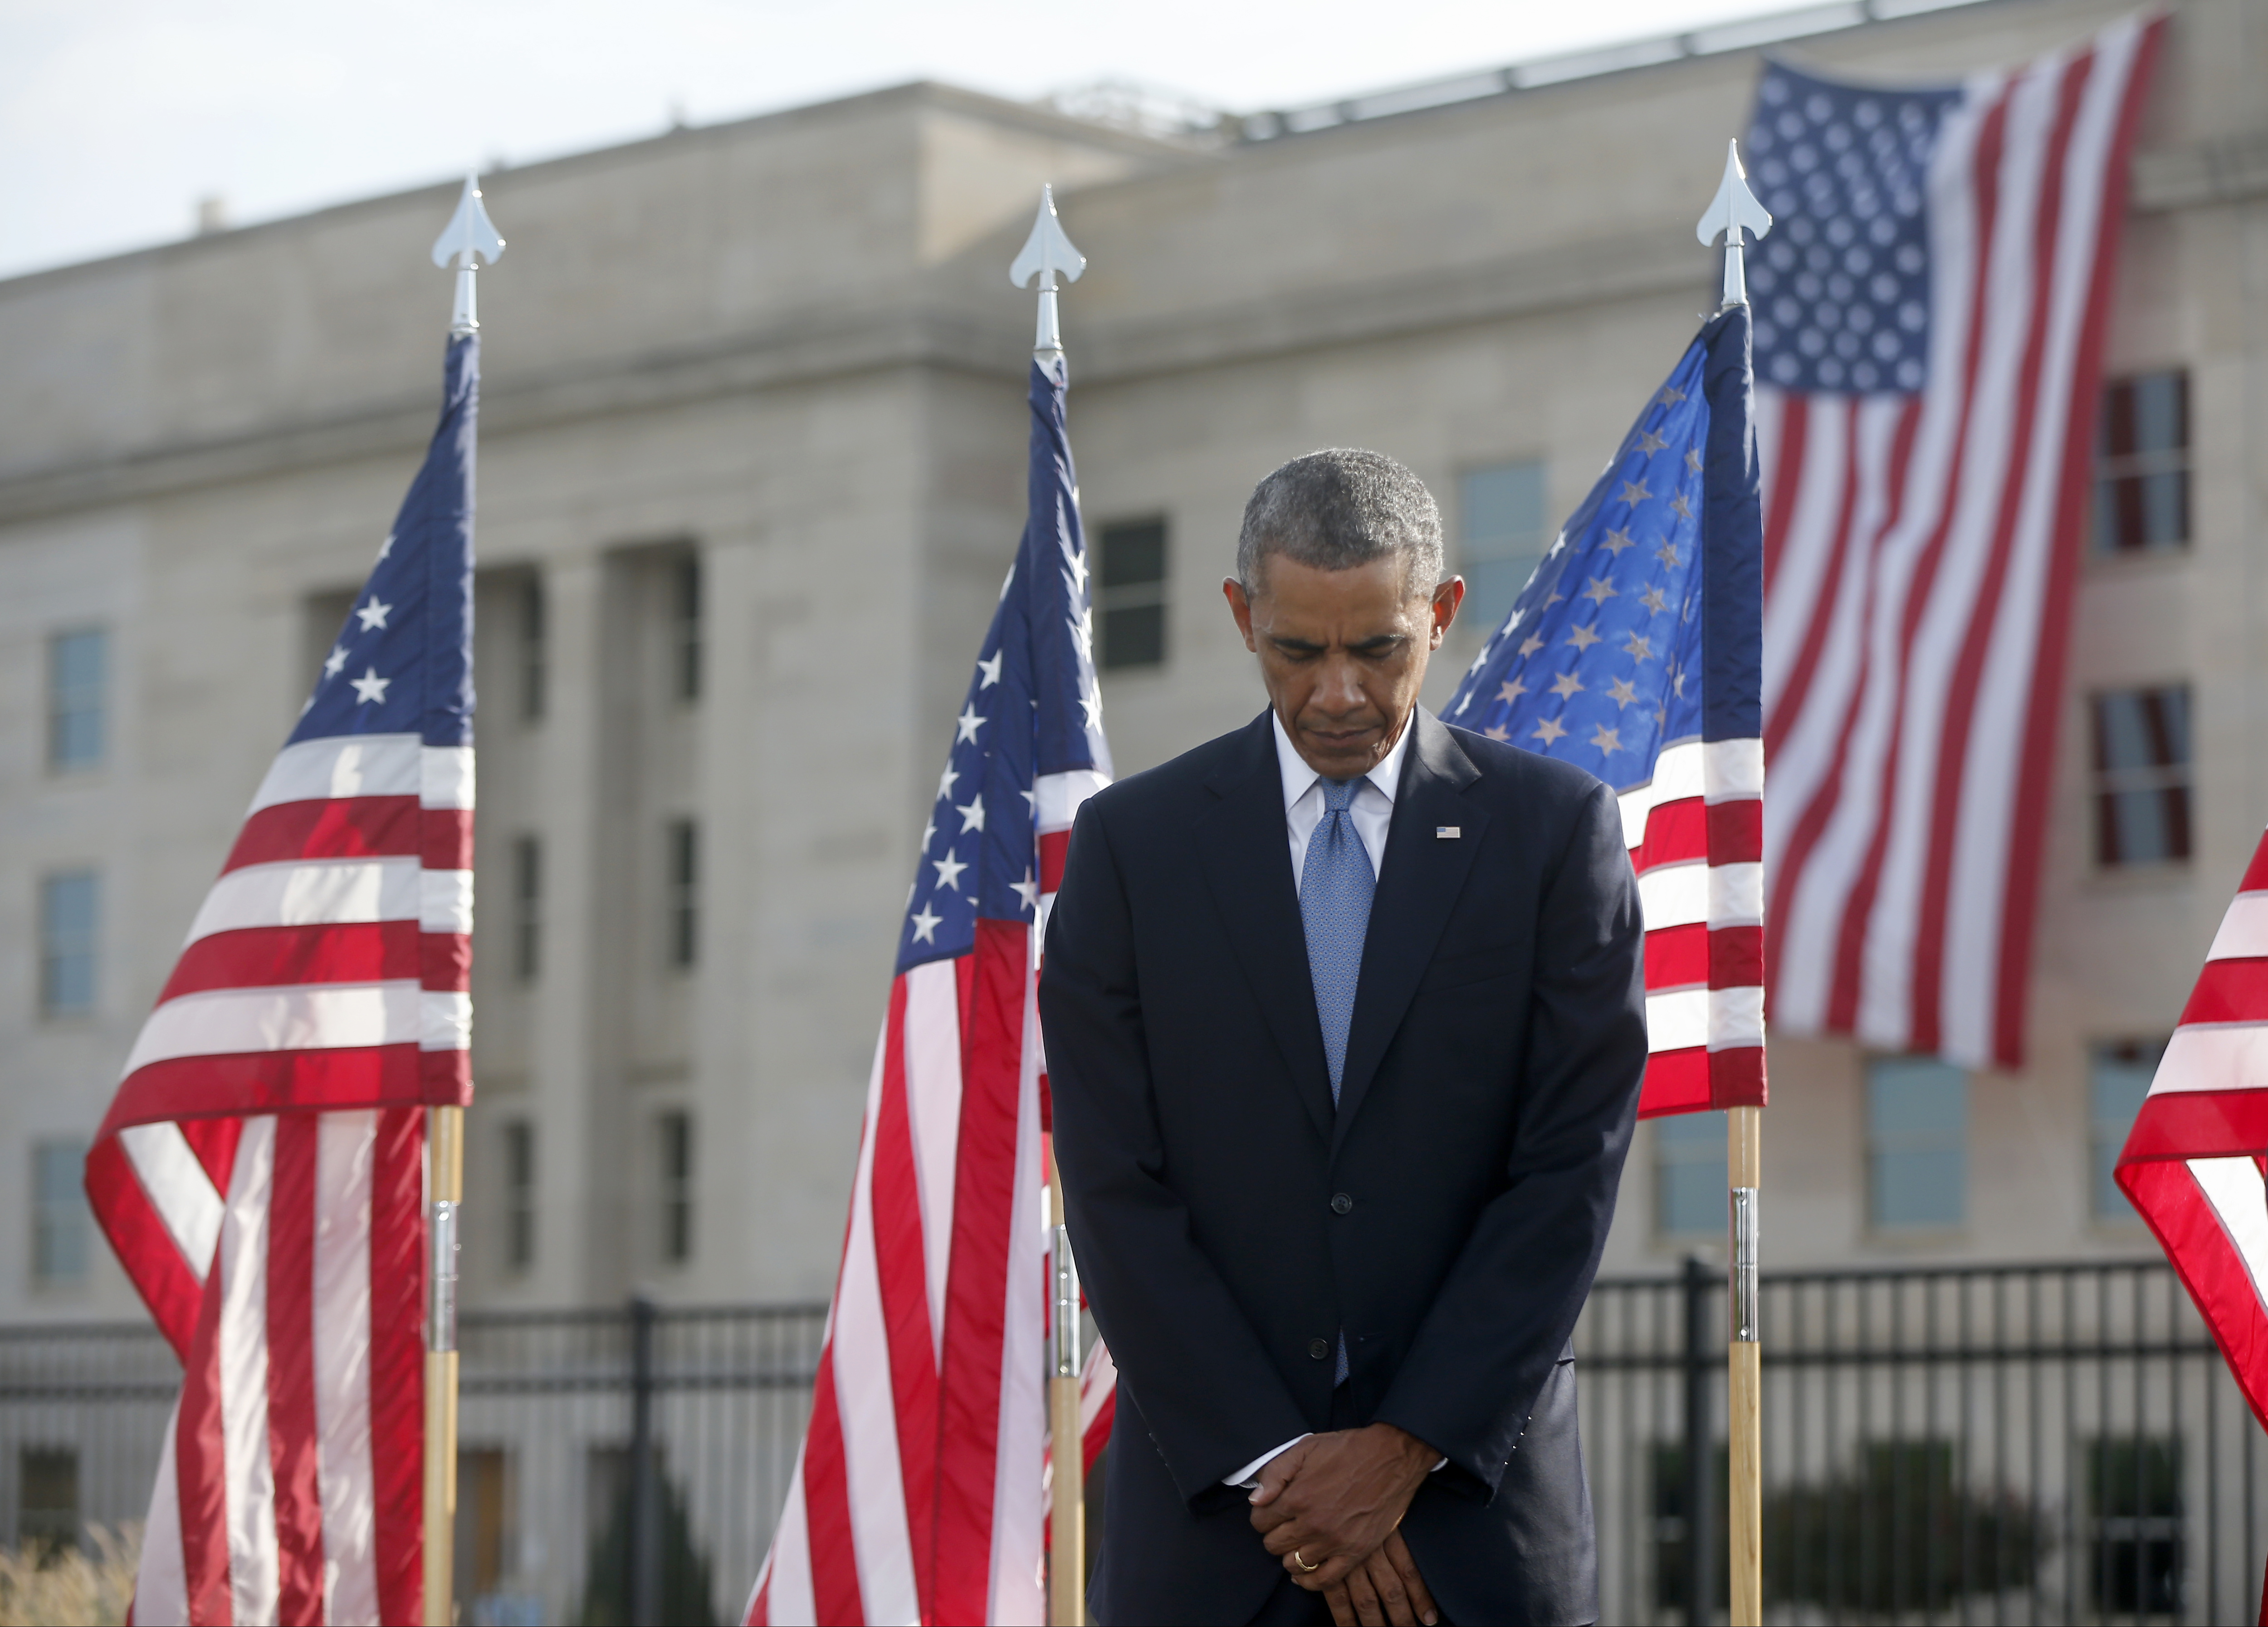 President Barack Obama pauses at the Pentagon, Thursday, Sept. 11, 2014, during a ceremony to mark the 13th anniversary of the 9/11 attacks. (AP Photo/Charles Dharapak)